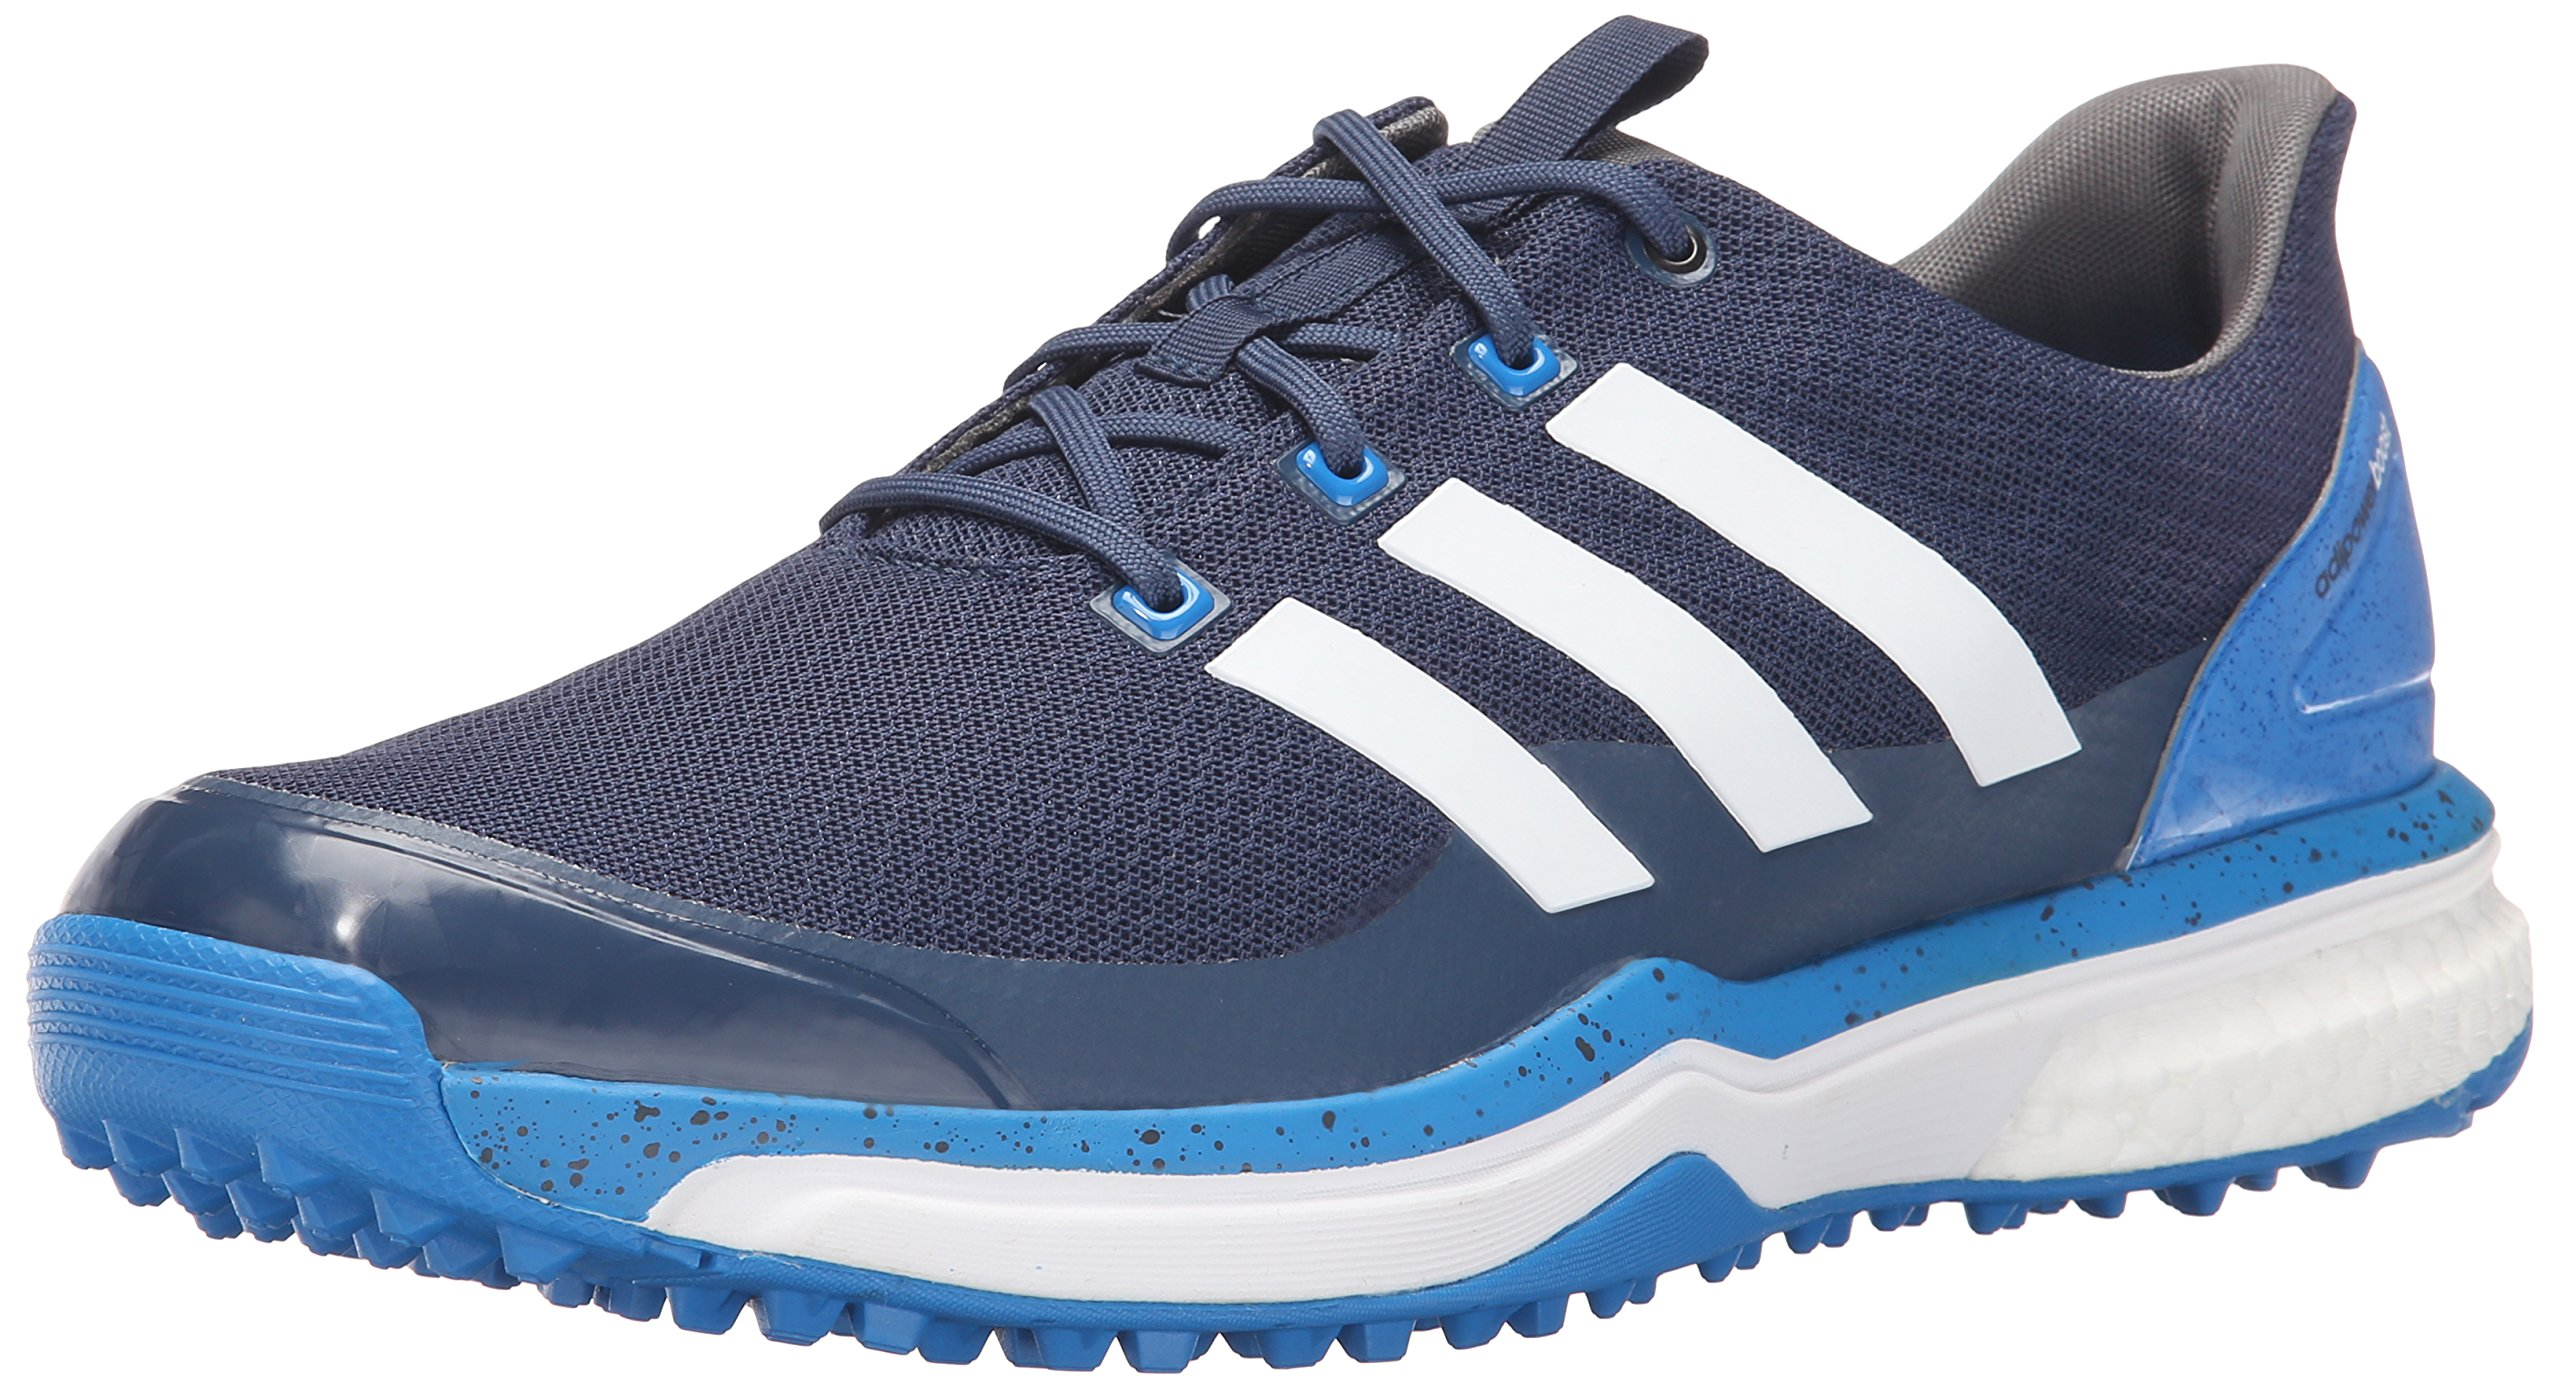 adidas Men's Adipower S Boost 2 Golf Cleated, Mineral Blue S16/FTWR White/Shock Blue S16, 8 M US